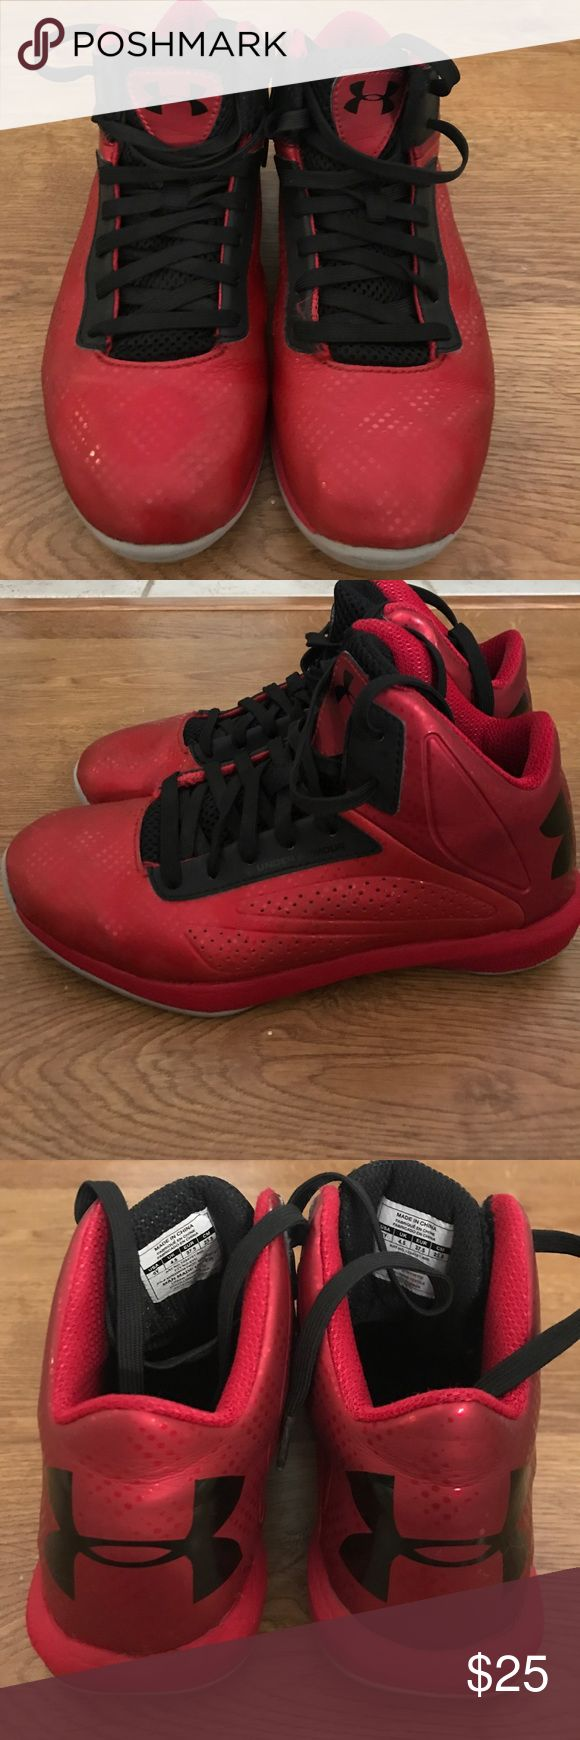 Gently  used Under Amour high top Tennis Shoes . Gently used red/black high top unisex under Armour Tennis Shoes.  My son wore them mainly for basketball only .. Under Armour Shoes Sneakers